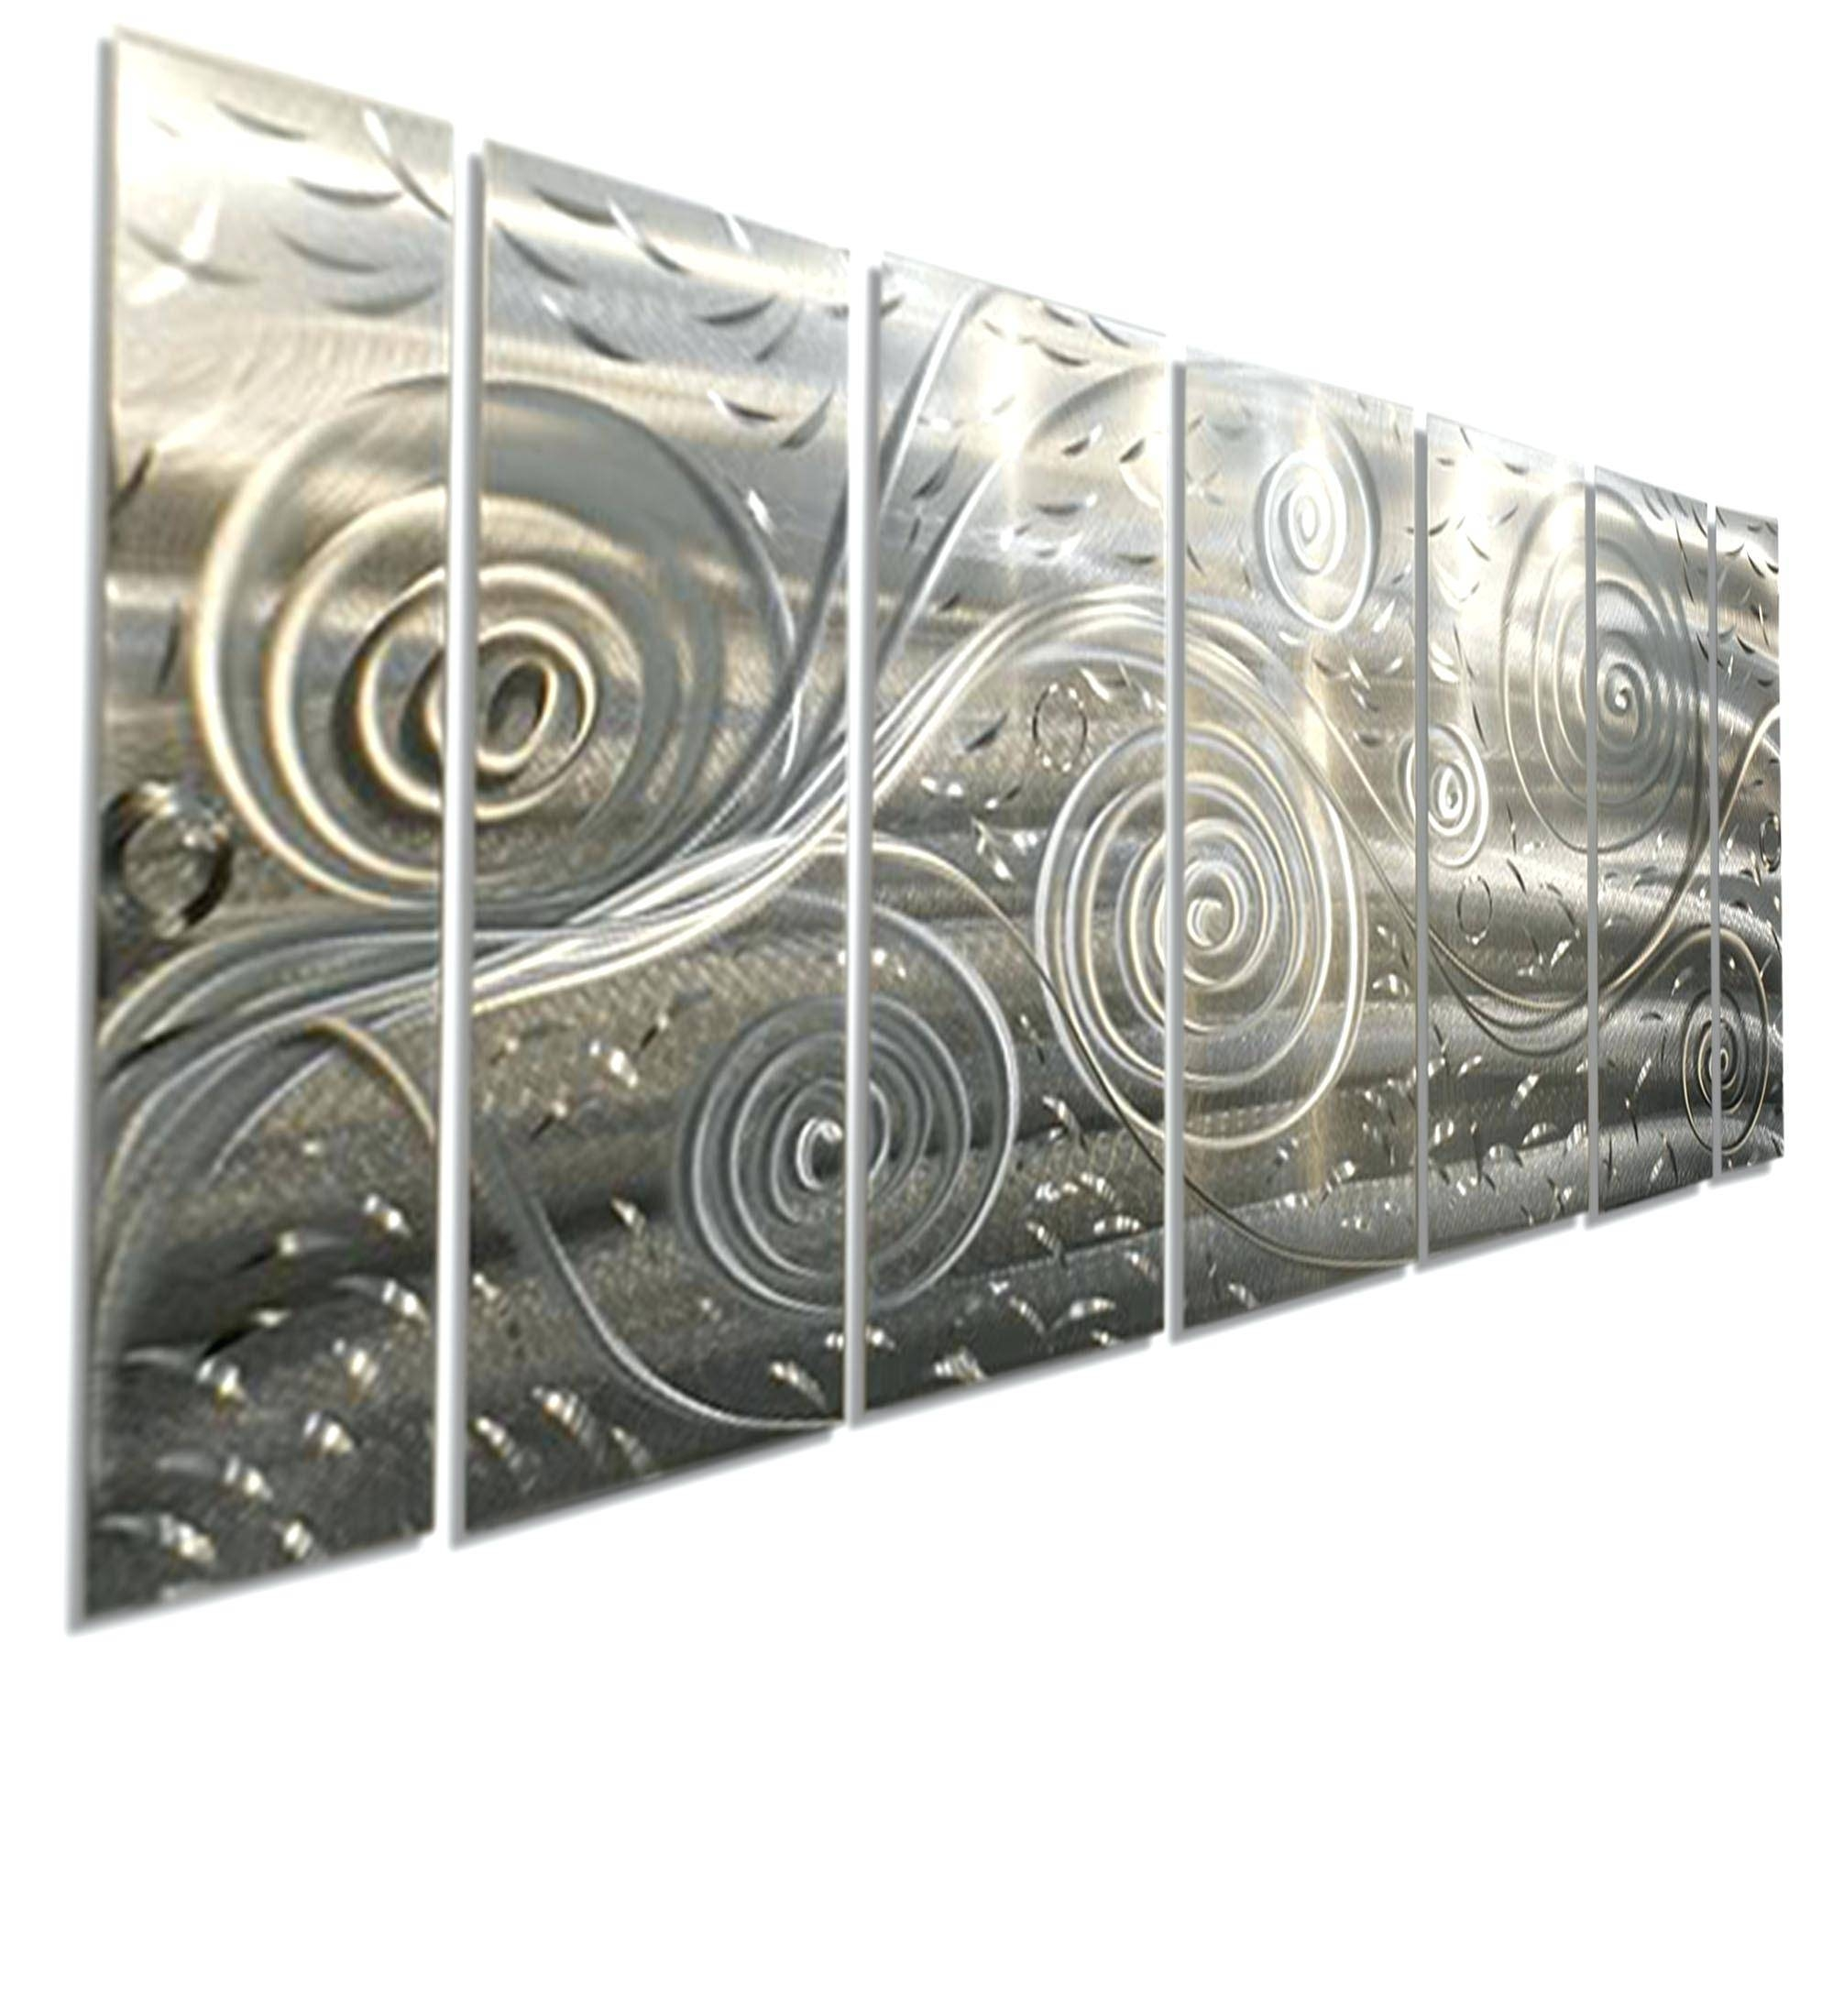 Wall Decor : Mesmerizing See Larger Image Modern Abstract Metal Inside 2017 Modern Wall Art Uk (View 12 of 20)